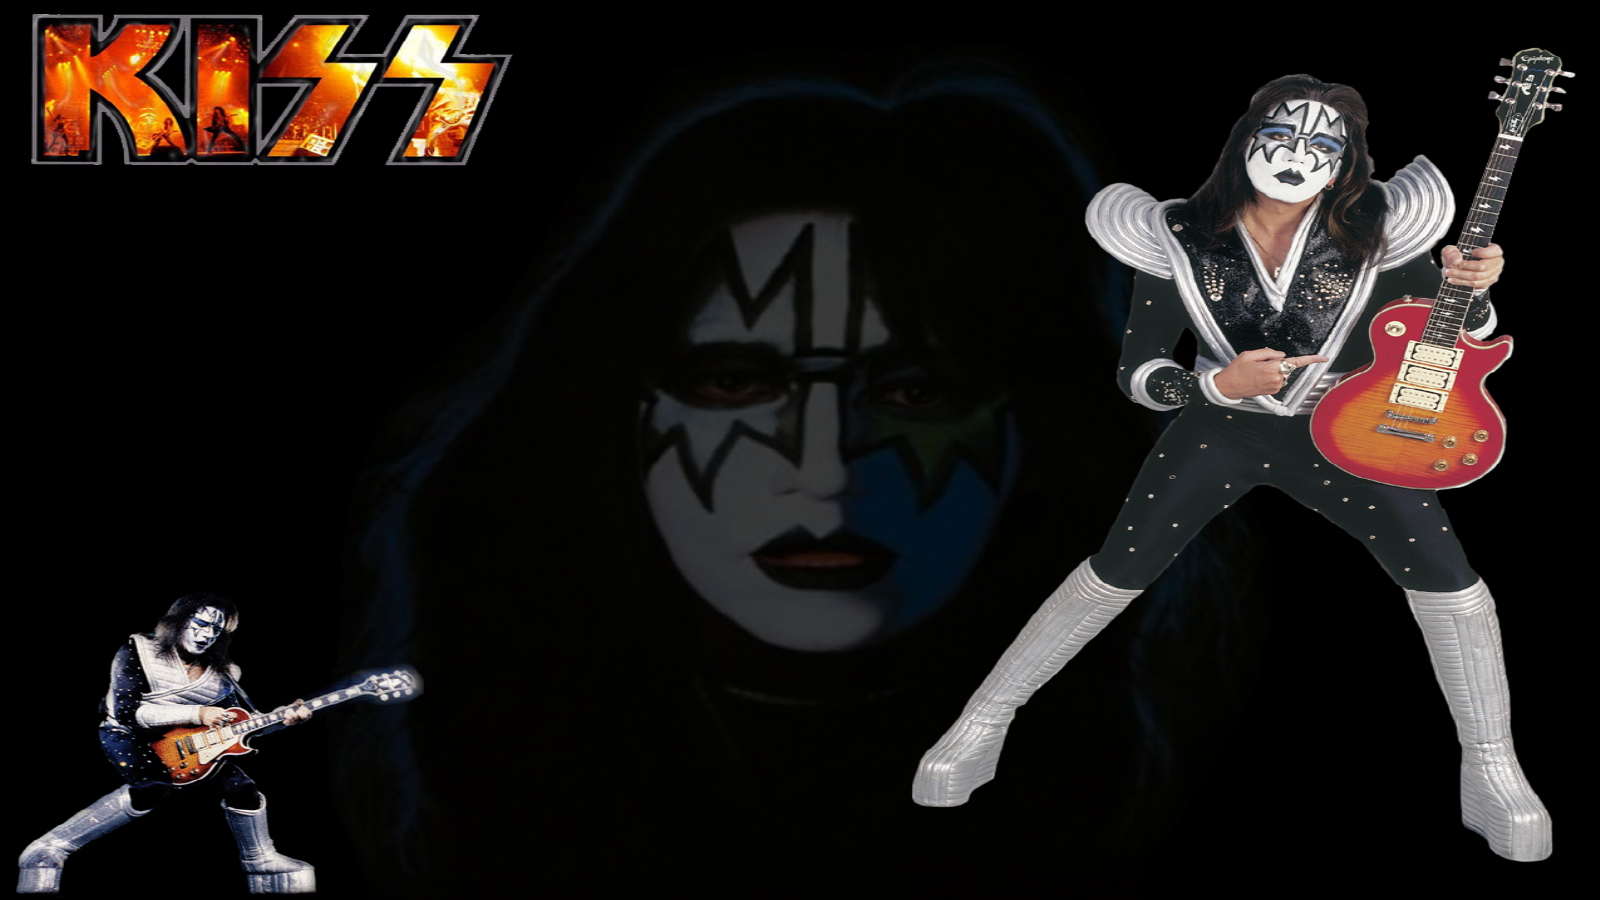 Ace From Kiss Computer Wallpapers Desktop Backgrounds 1600x900 ID 1600x900